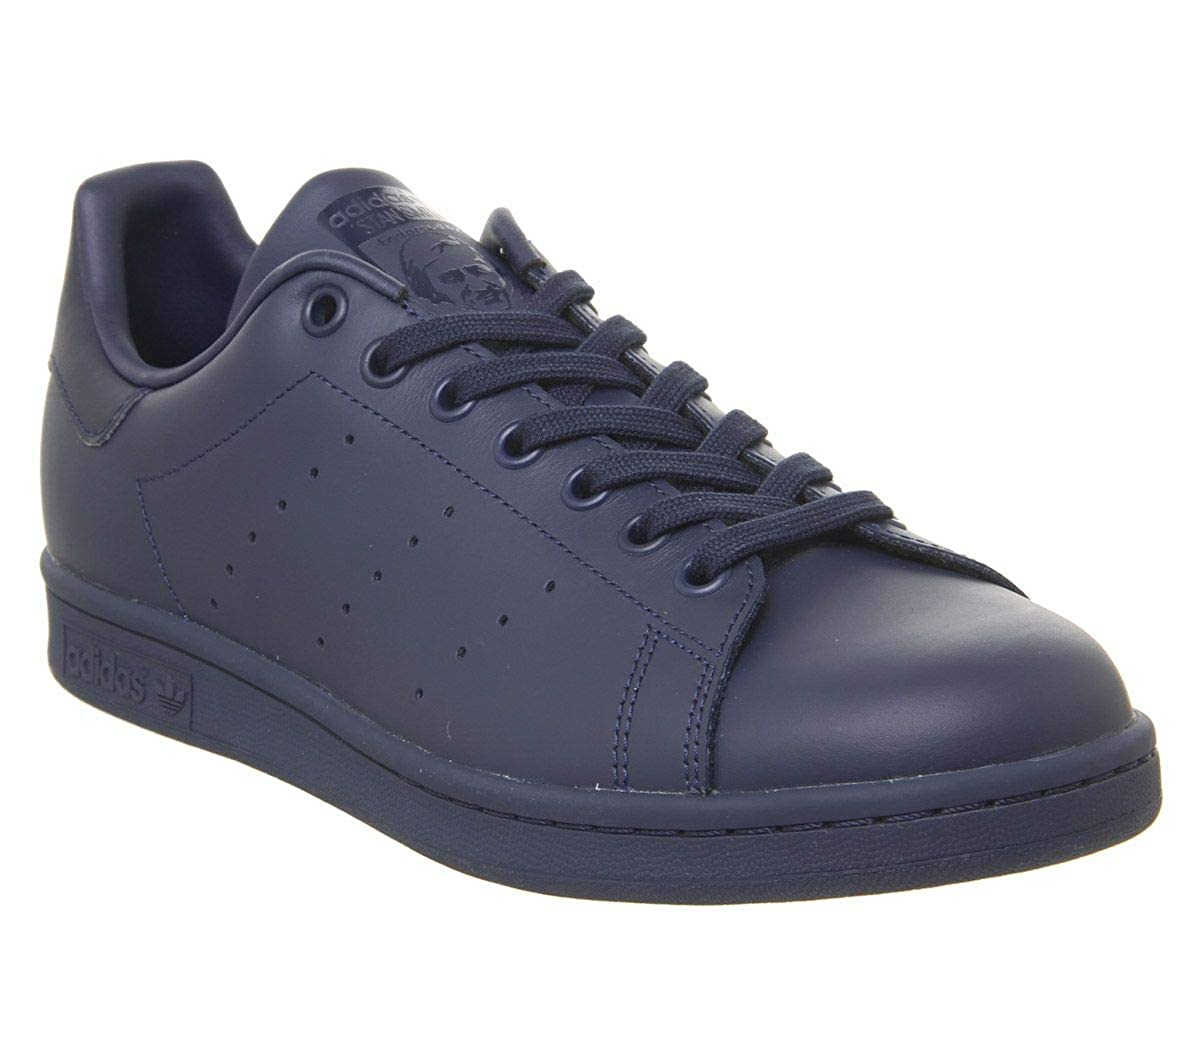 brand new 75f35 91dff adidas Men s Stan Smith Trainers  Amazon.co.uk  Shoes   Bags